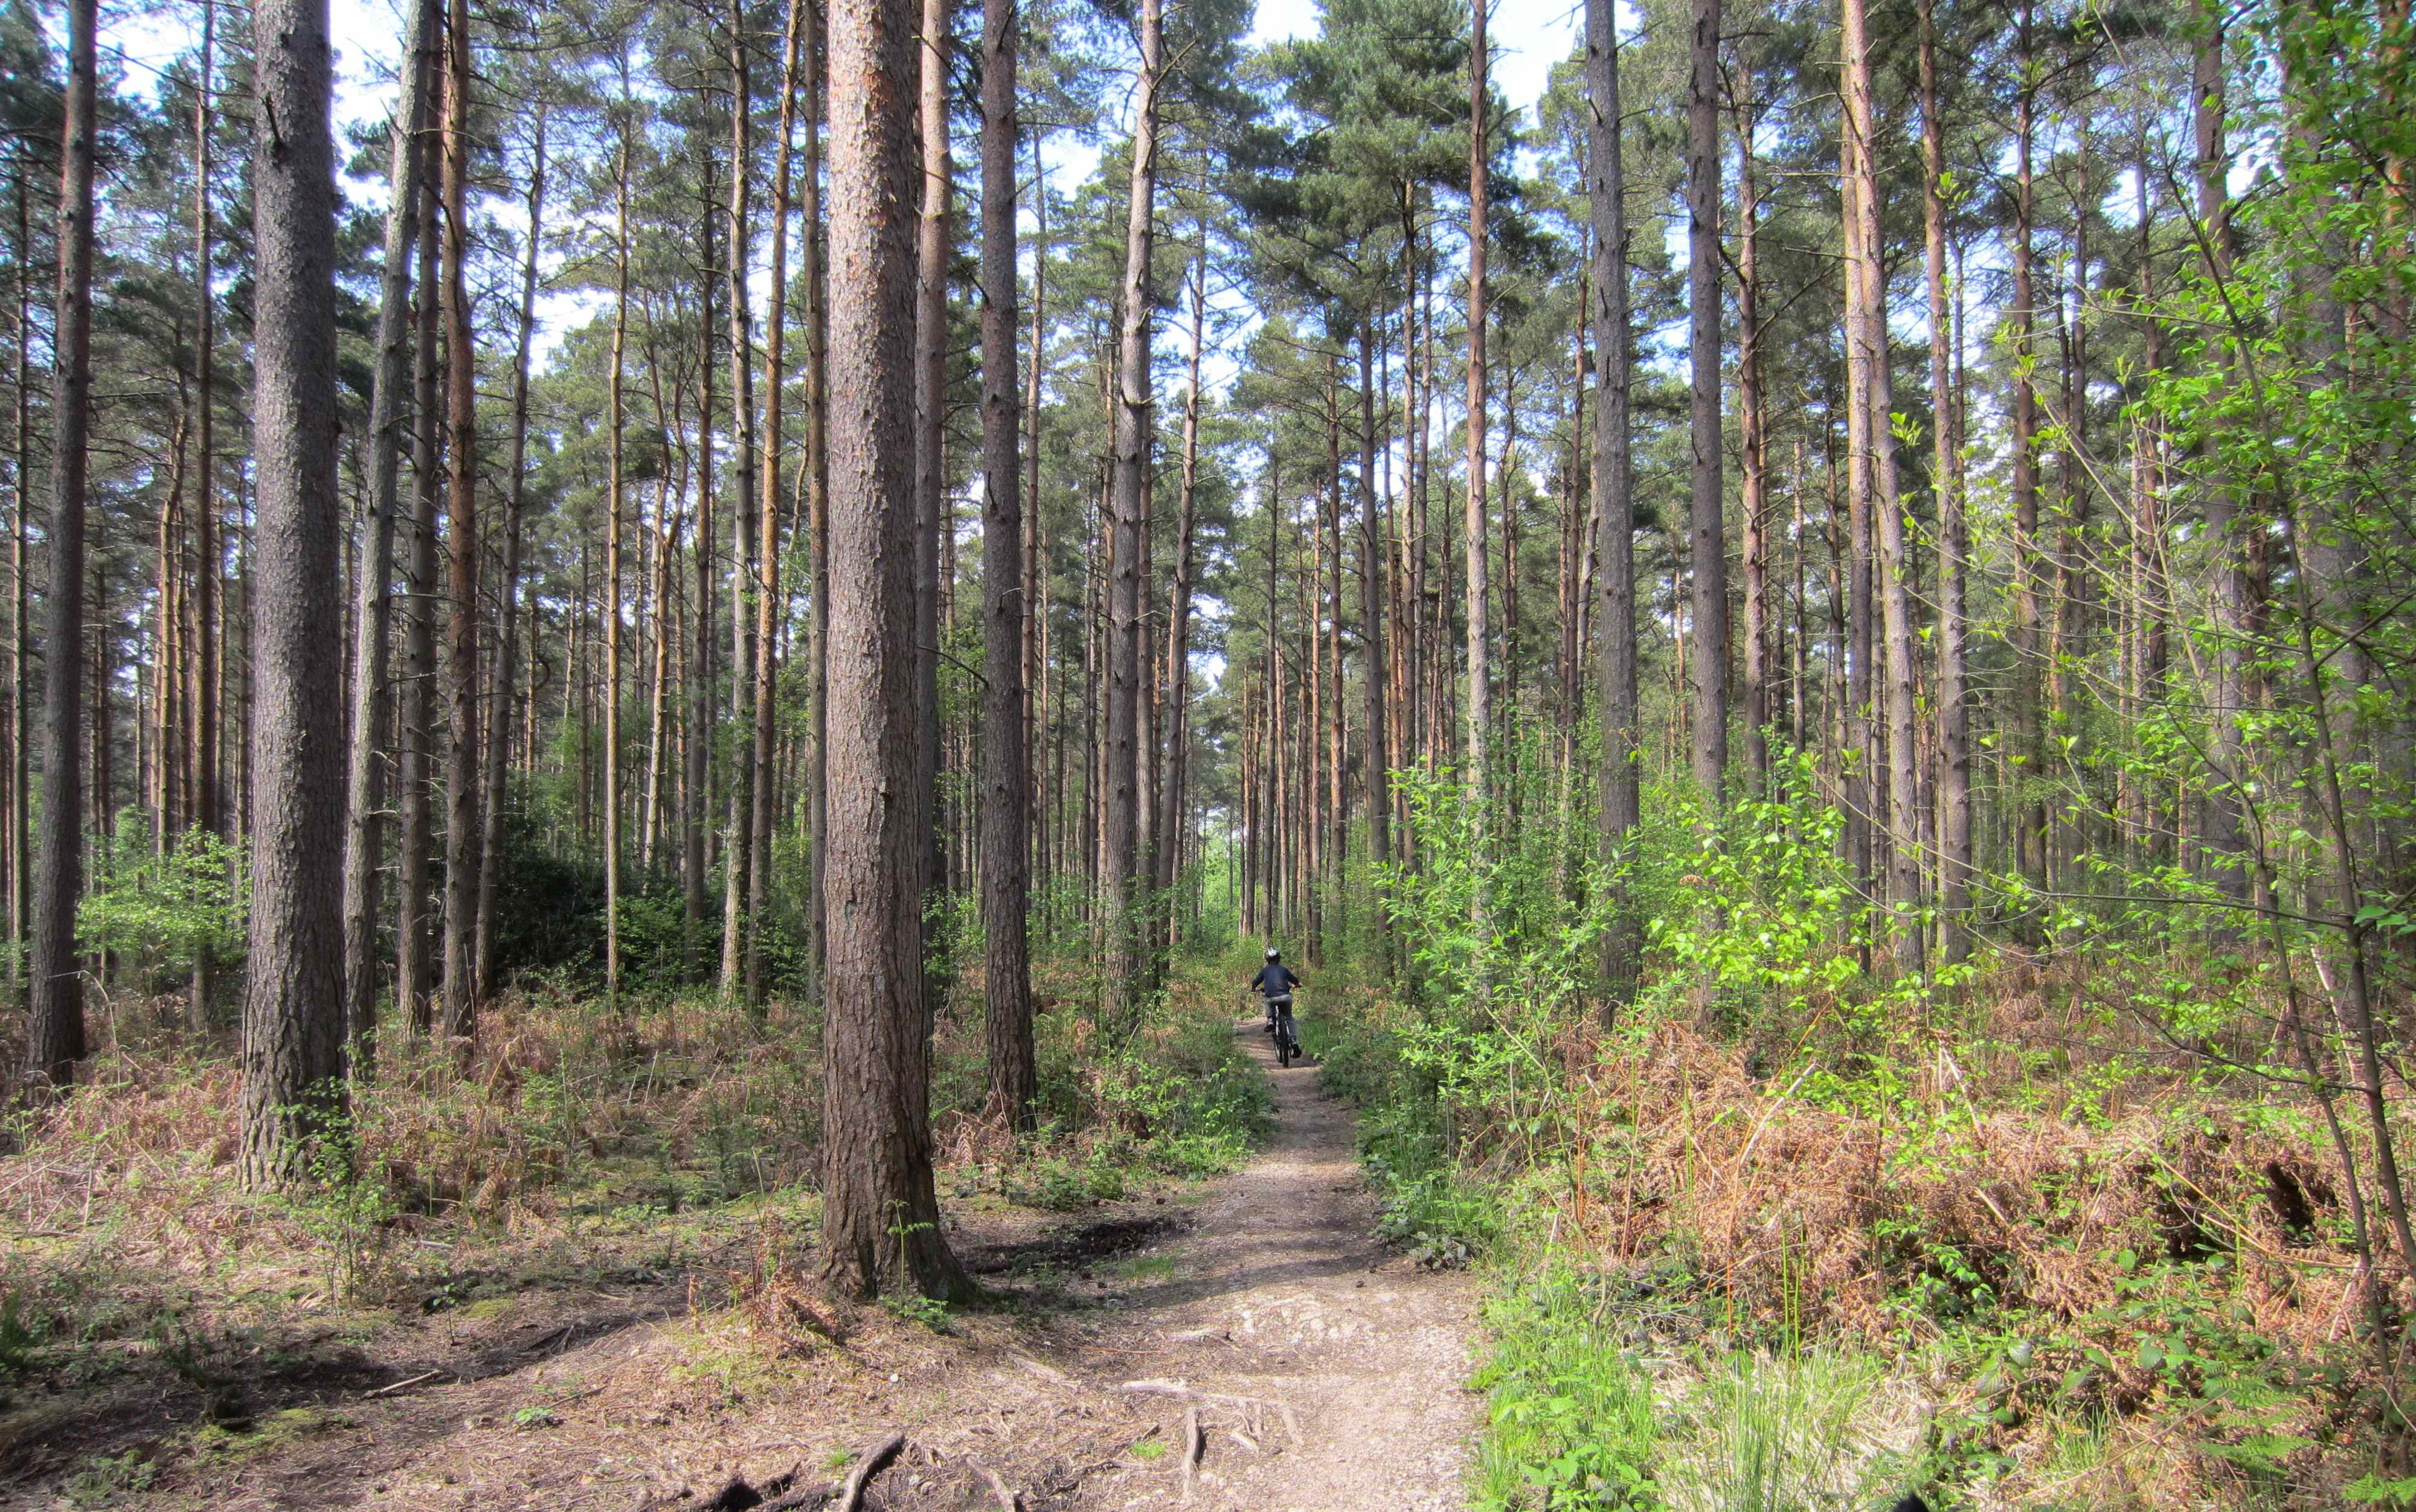 tunstall forest biking to lose weight